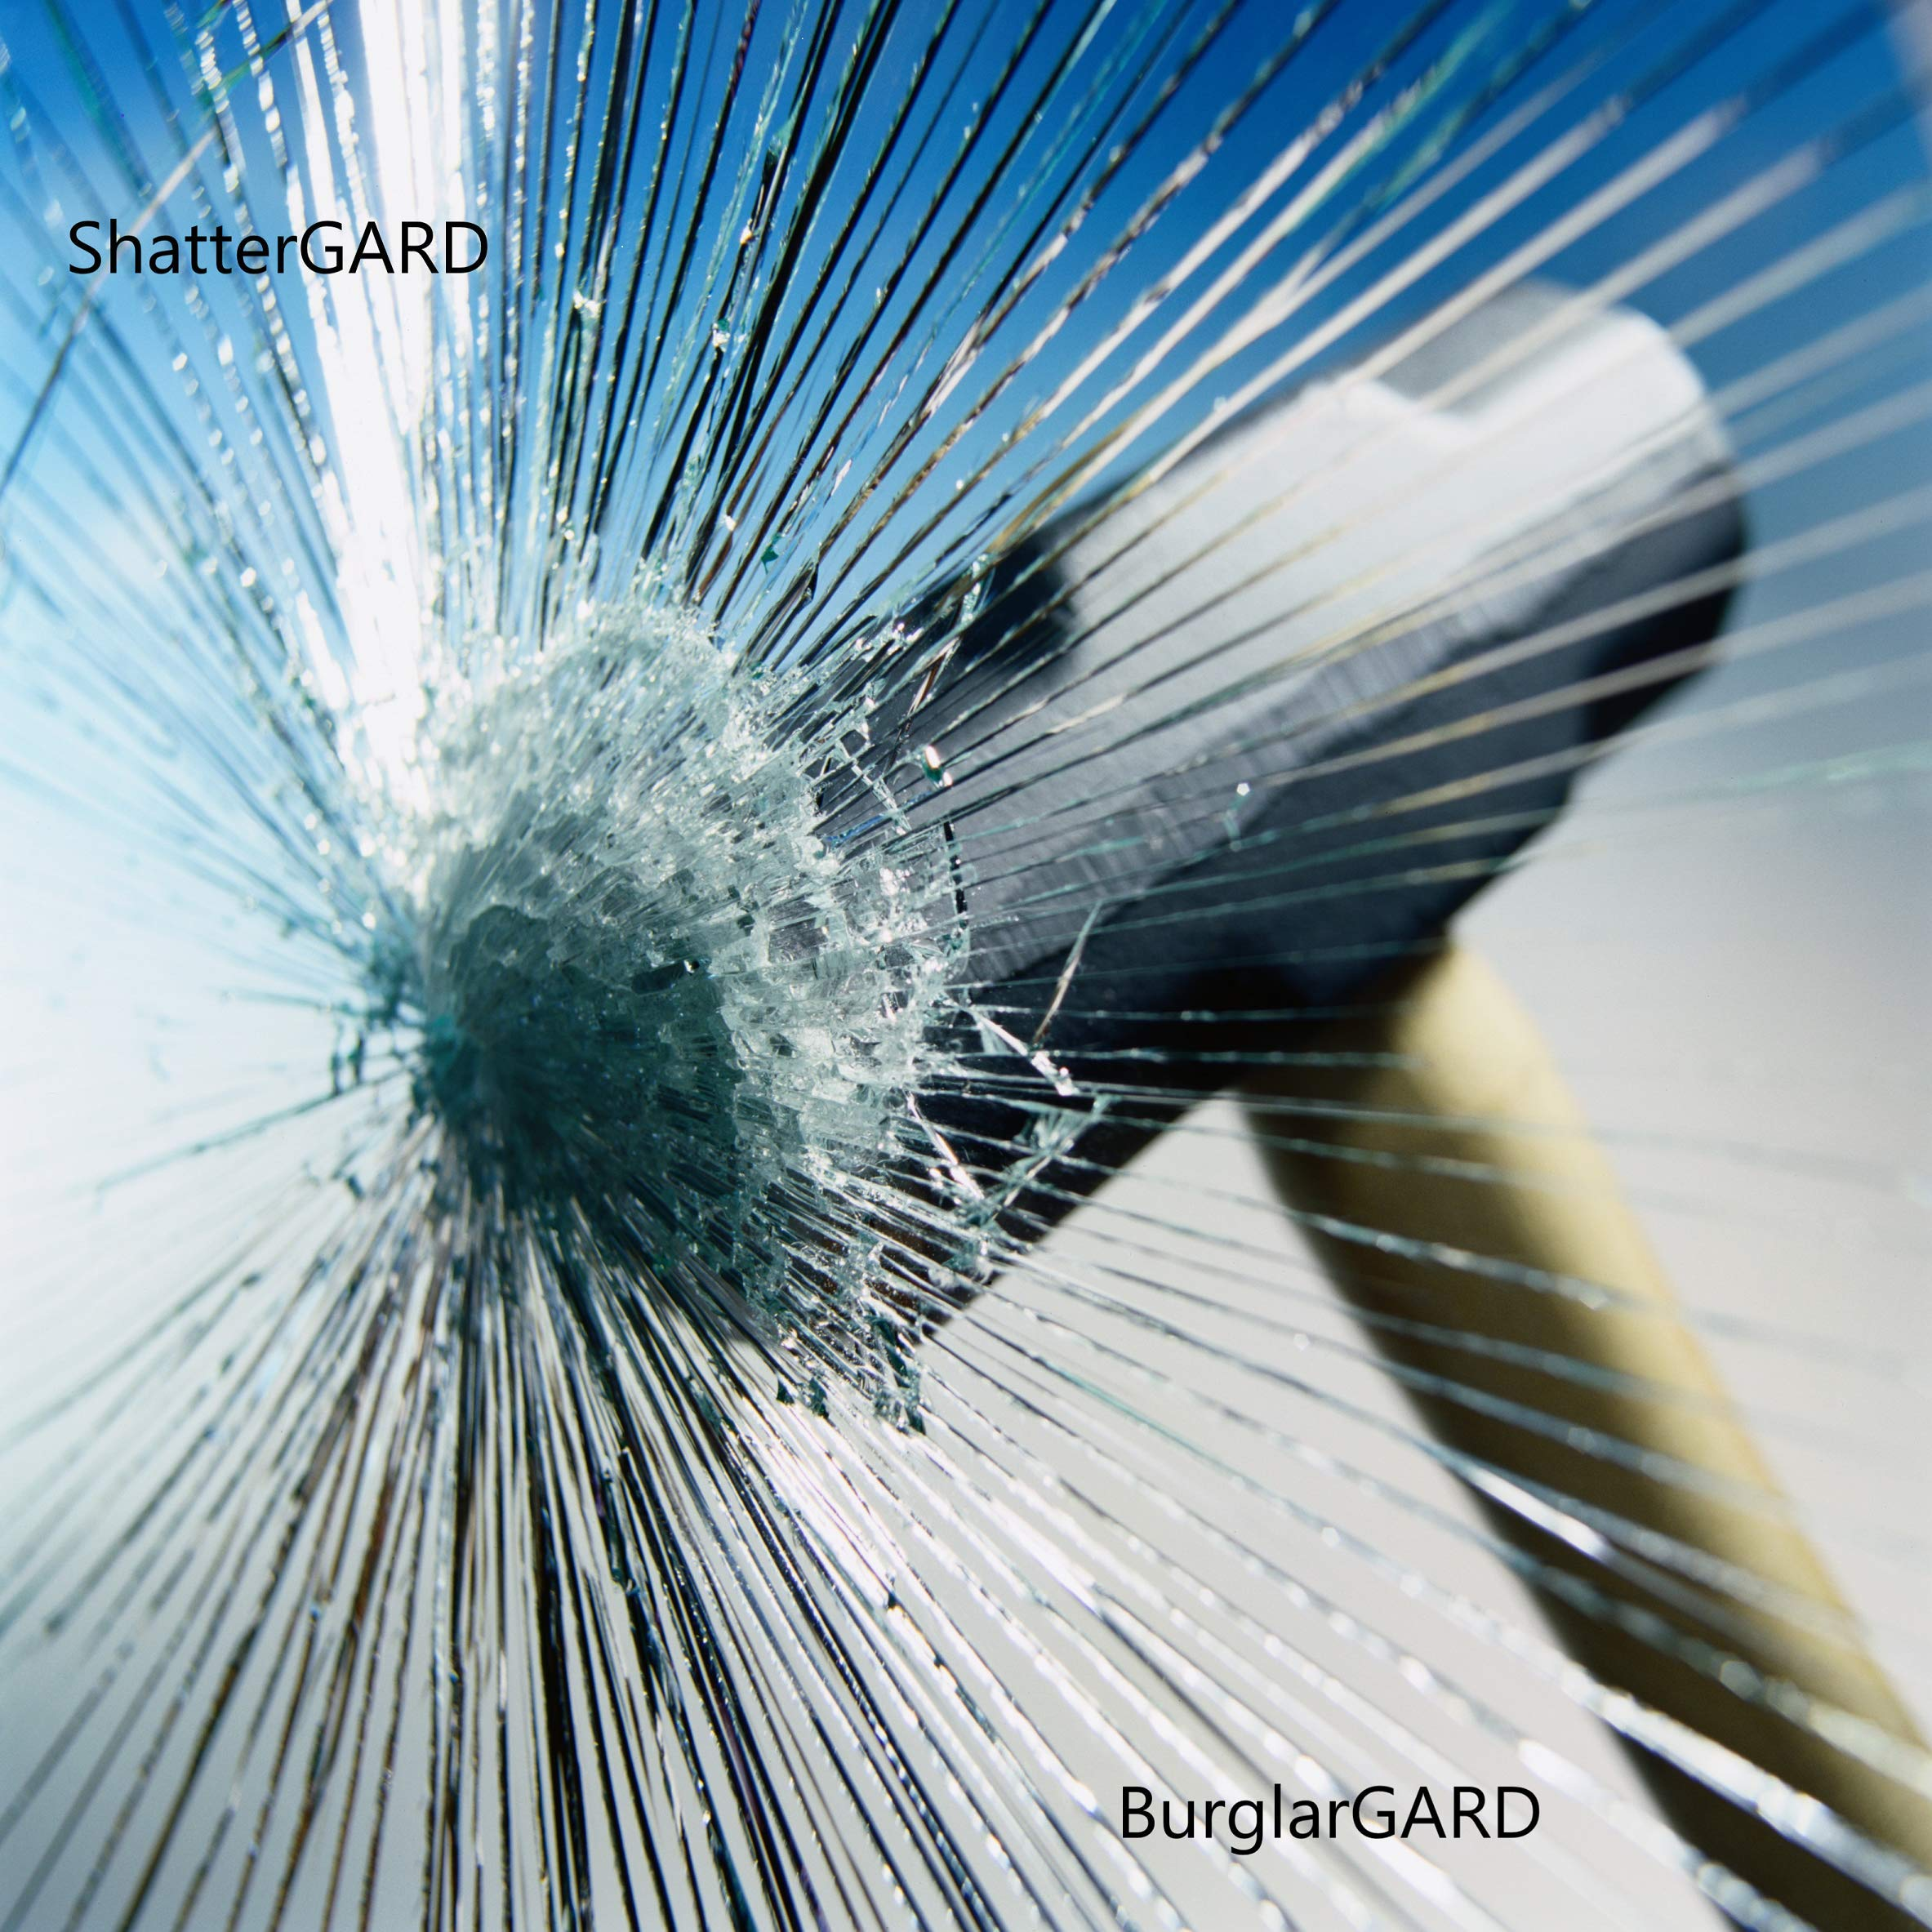 Glass Protection Film  36'' x 25` Inches   75 Sq Feet   Security Window Film Kits by ShatterGARD. (DIY) BurglarGARD Glass Protection Film Helps Defend Against Burglars, Violent Home Invaders by ShatterGard